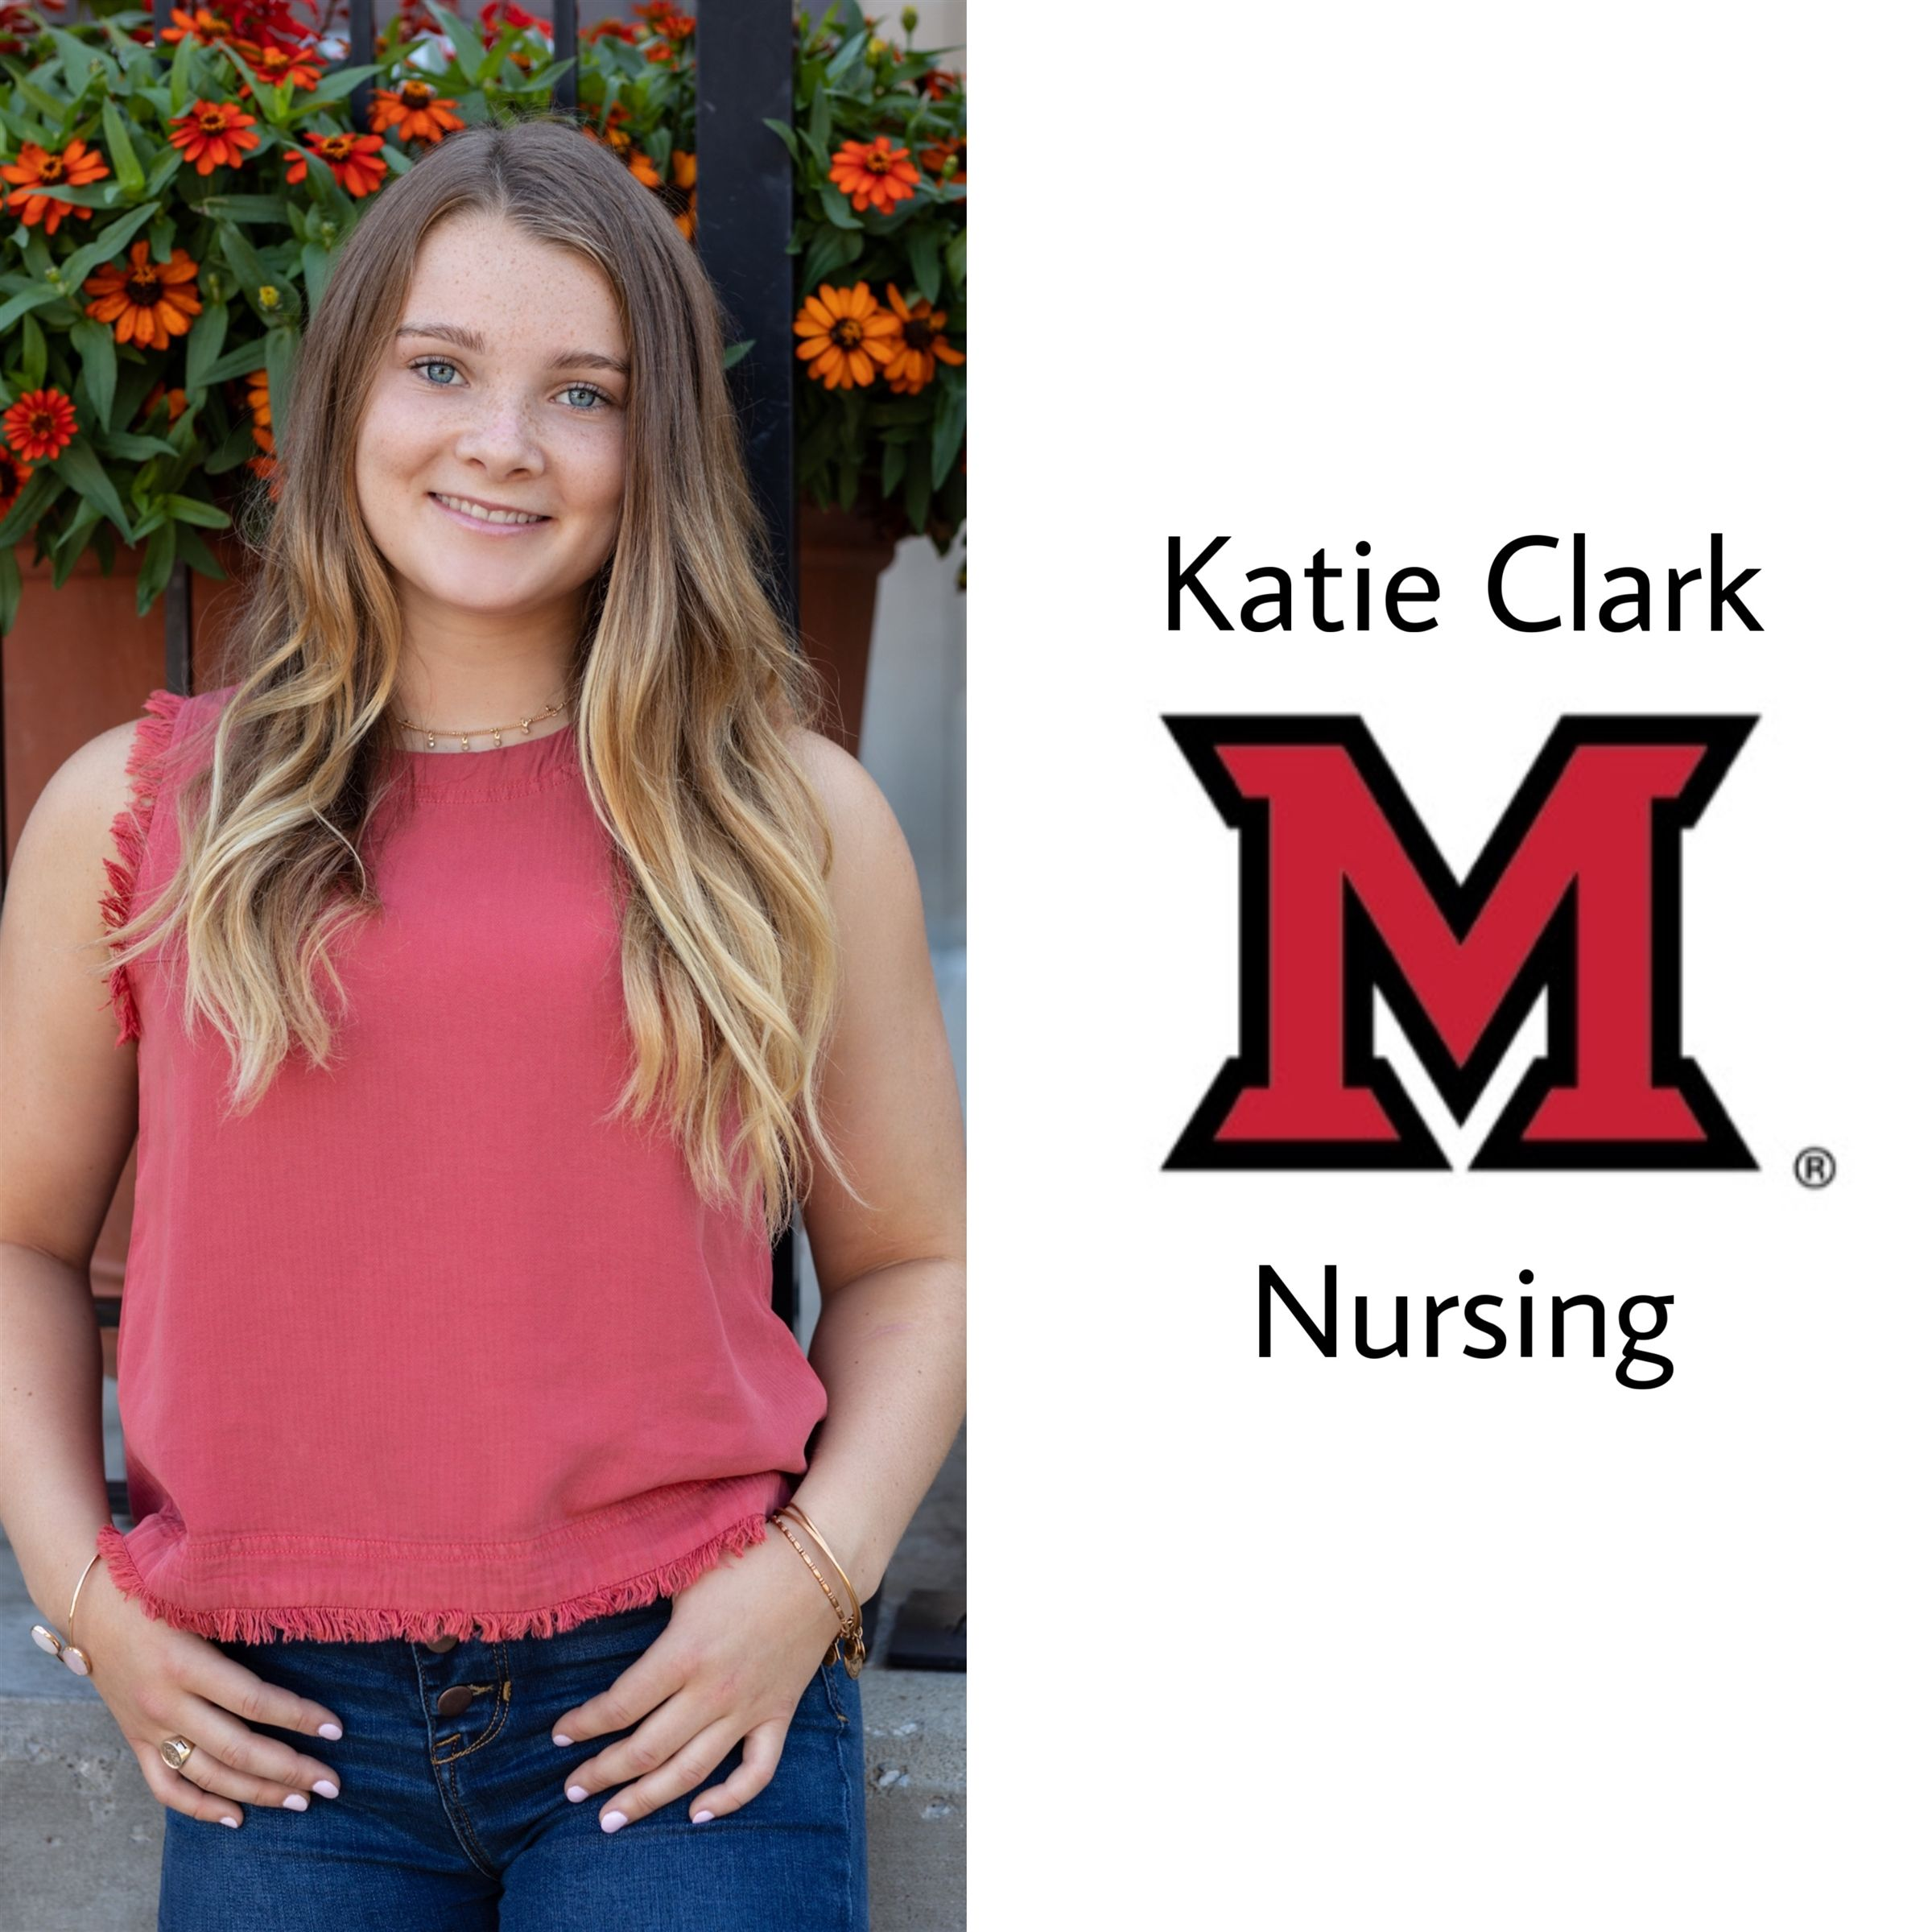 Congrats Katie!! She will be attending Miami of Ohio majoring in nursing next year!